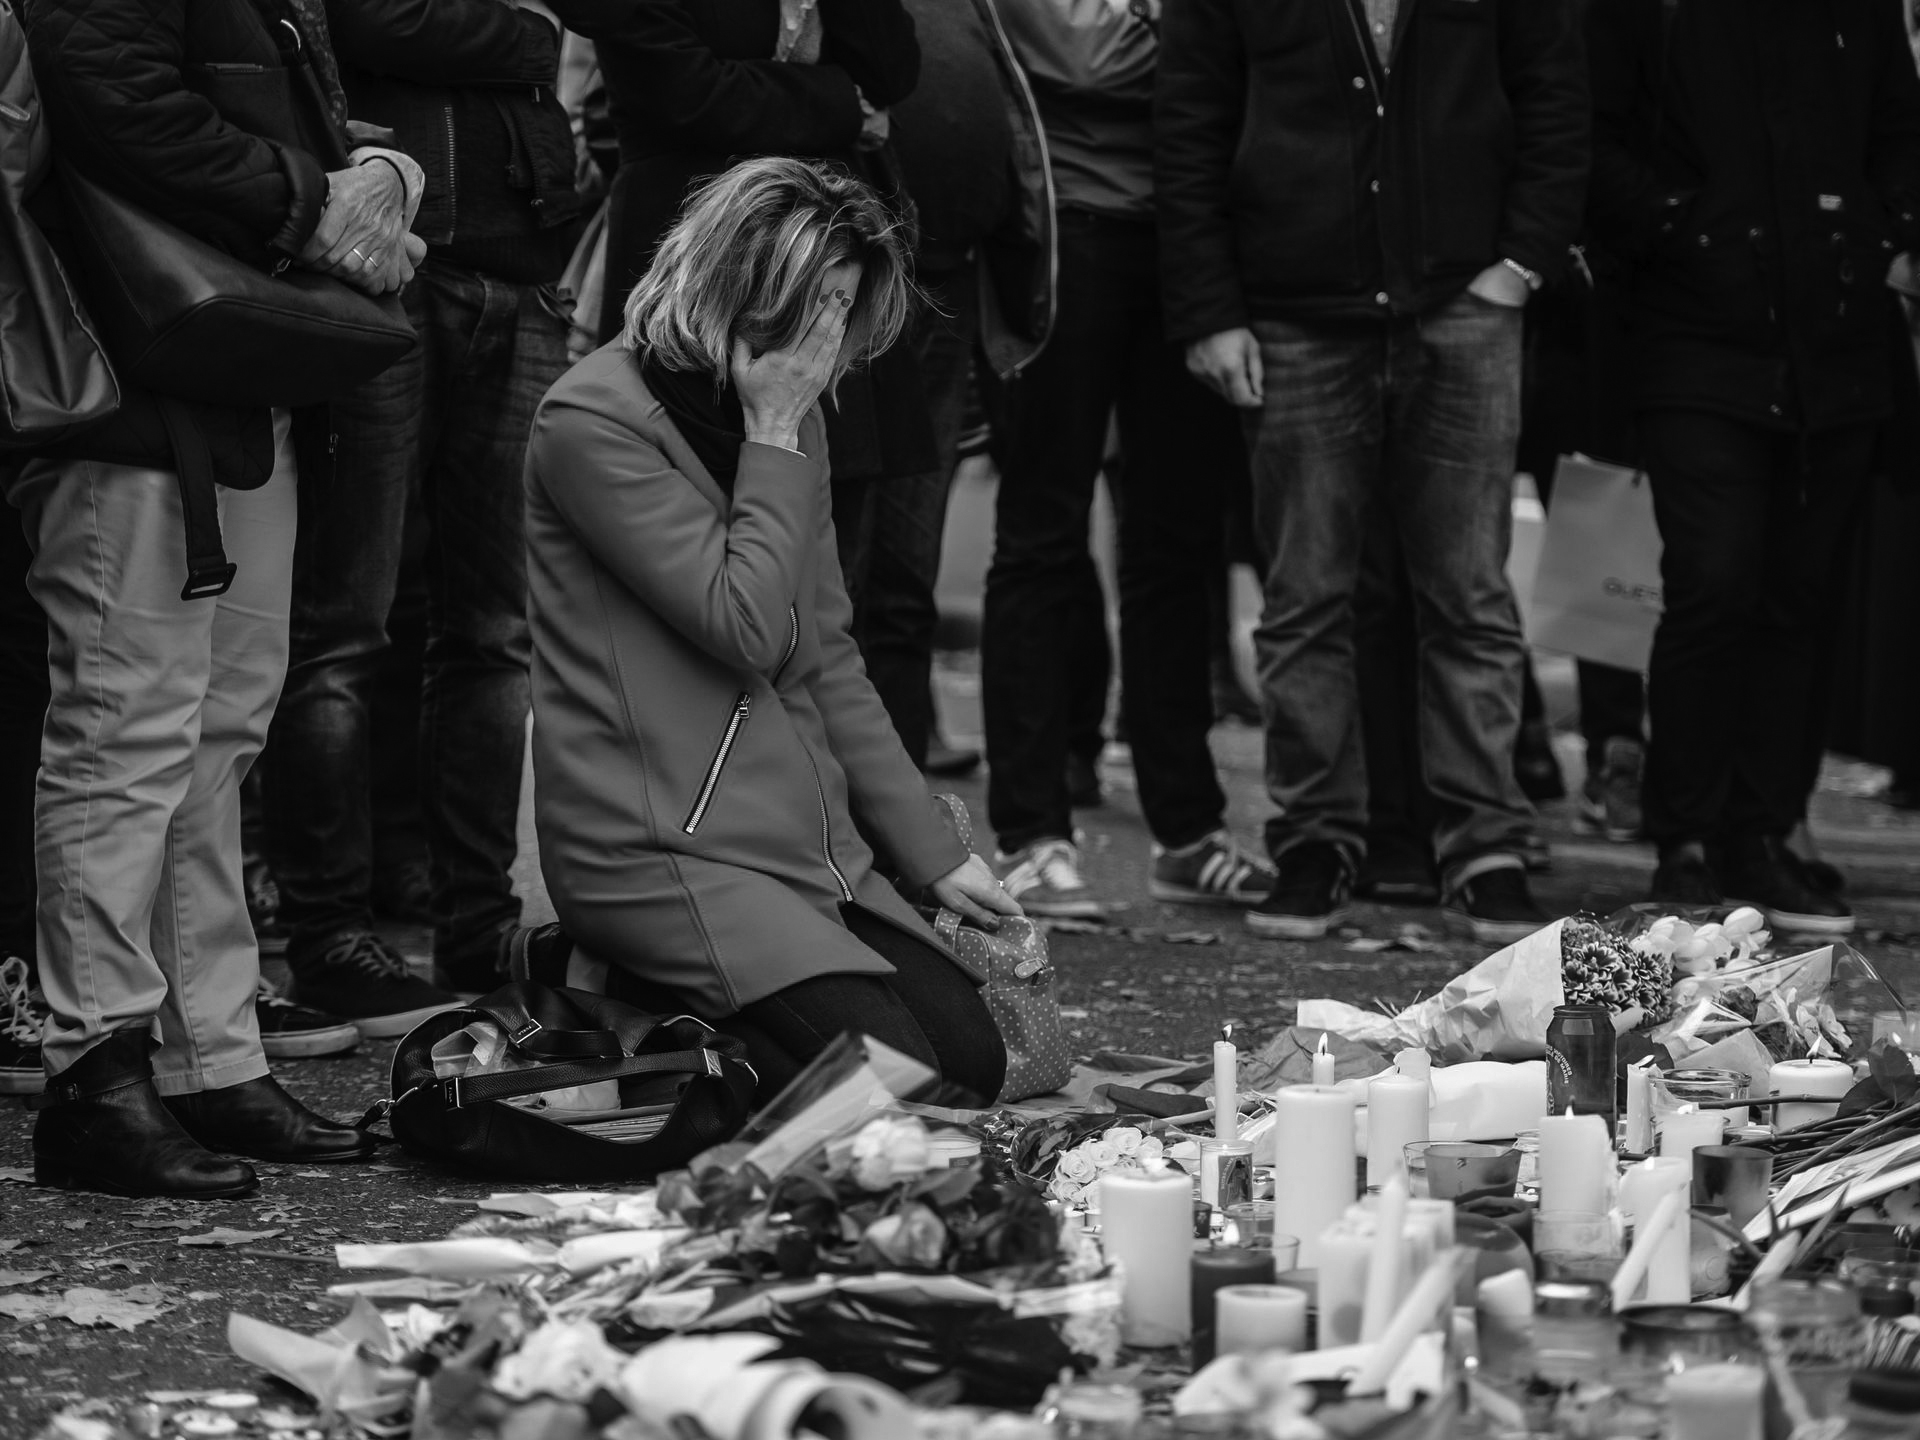 May peace be with all the victims and families' Parisian shares thoughts on recent events